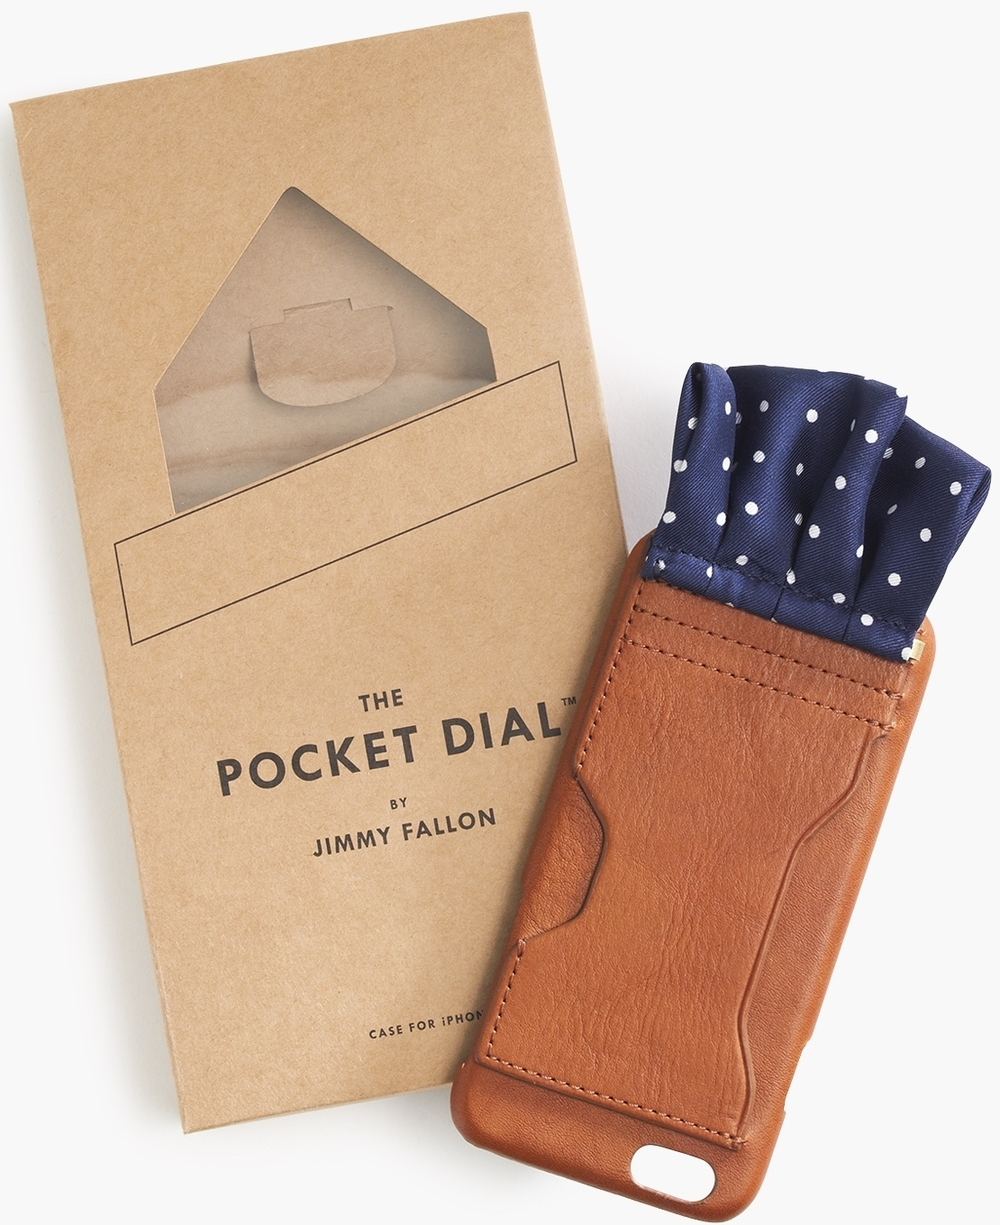 J.Crew x Jimmy Fallon 'The Pocket Dial', $48